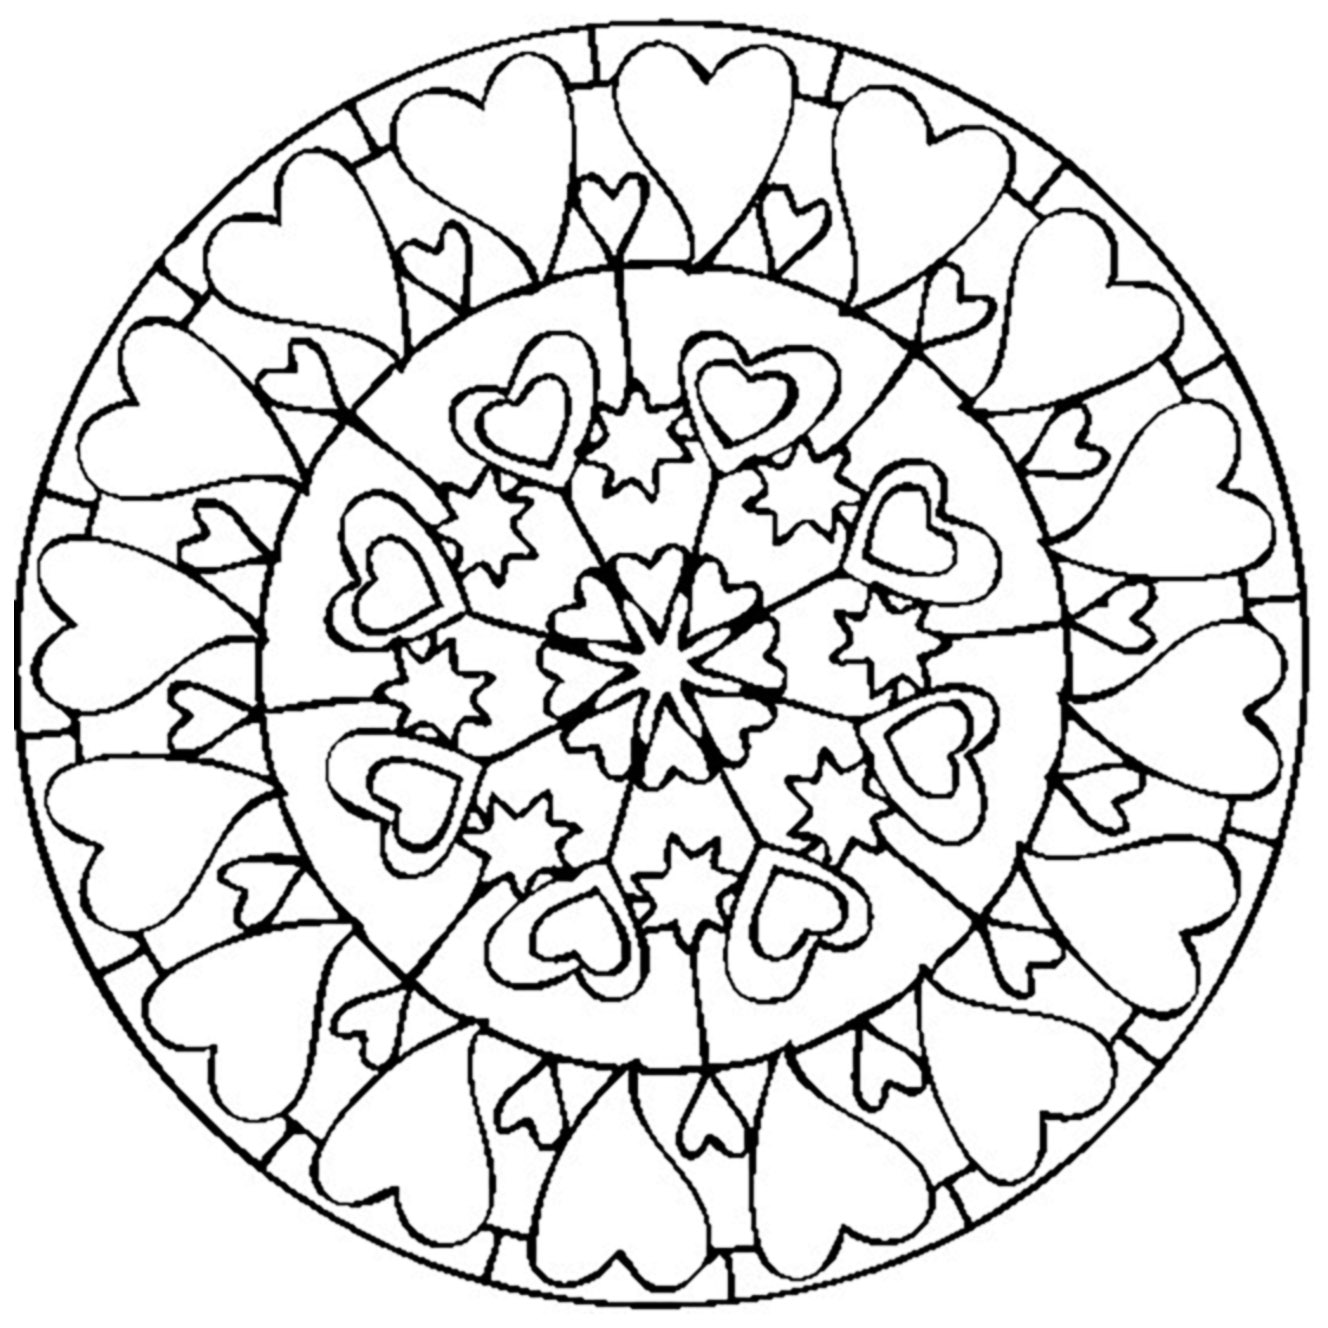 older valentines day coloring pages - photo#31